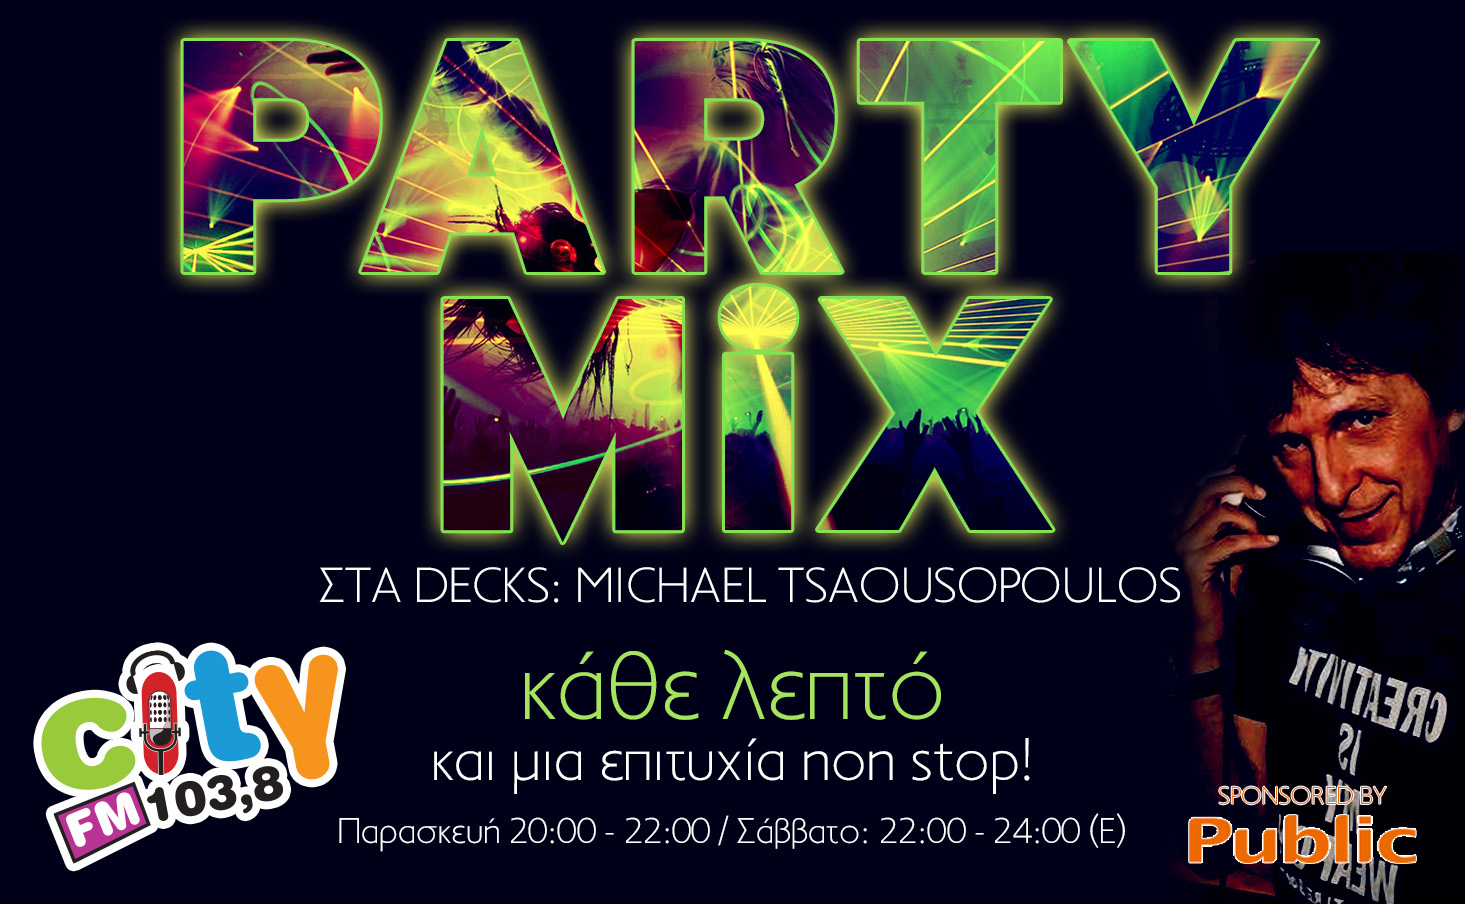 tsaousopoulos-PARTY mix